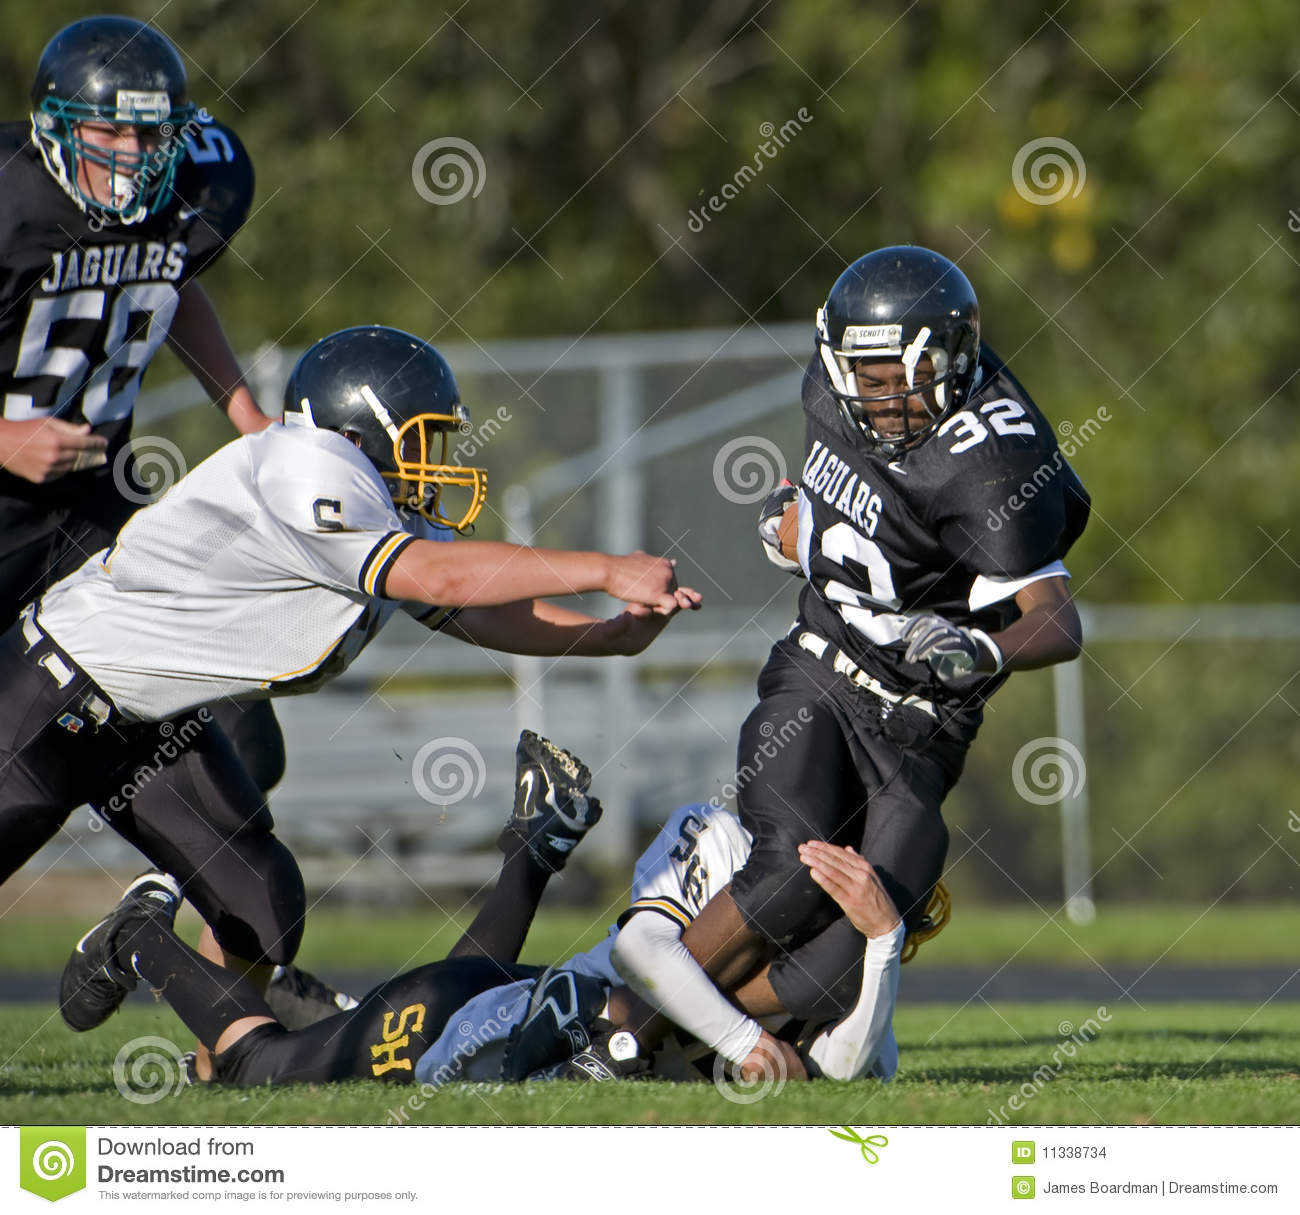 HS American Football tackle